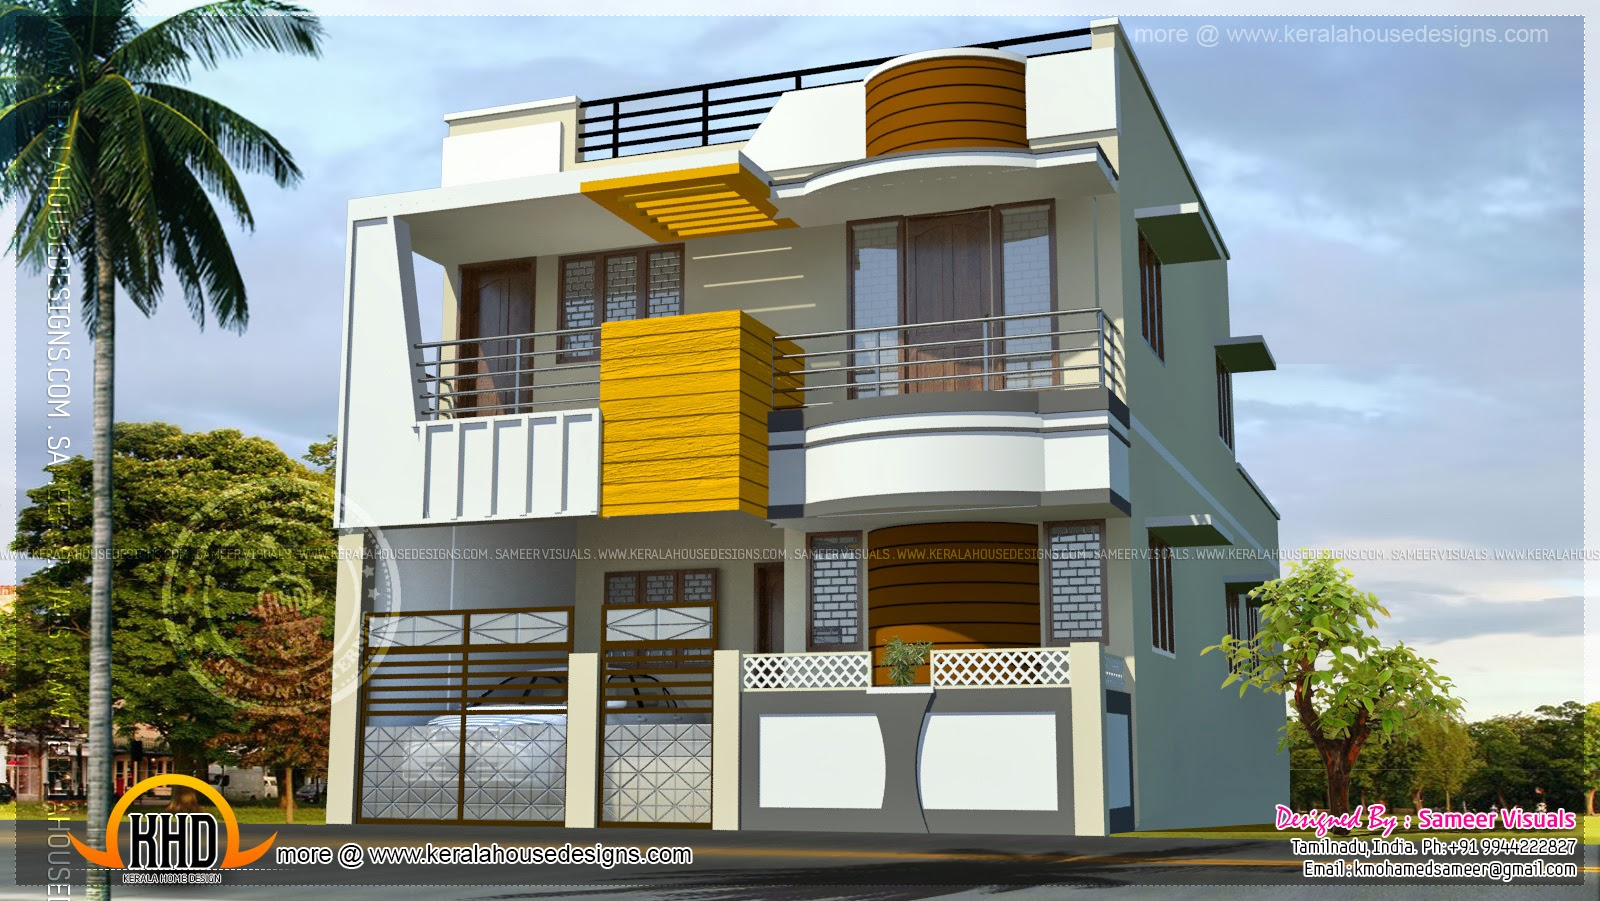 January 2014 kerala home design and floor plans Building plans indian homes